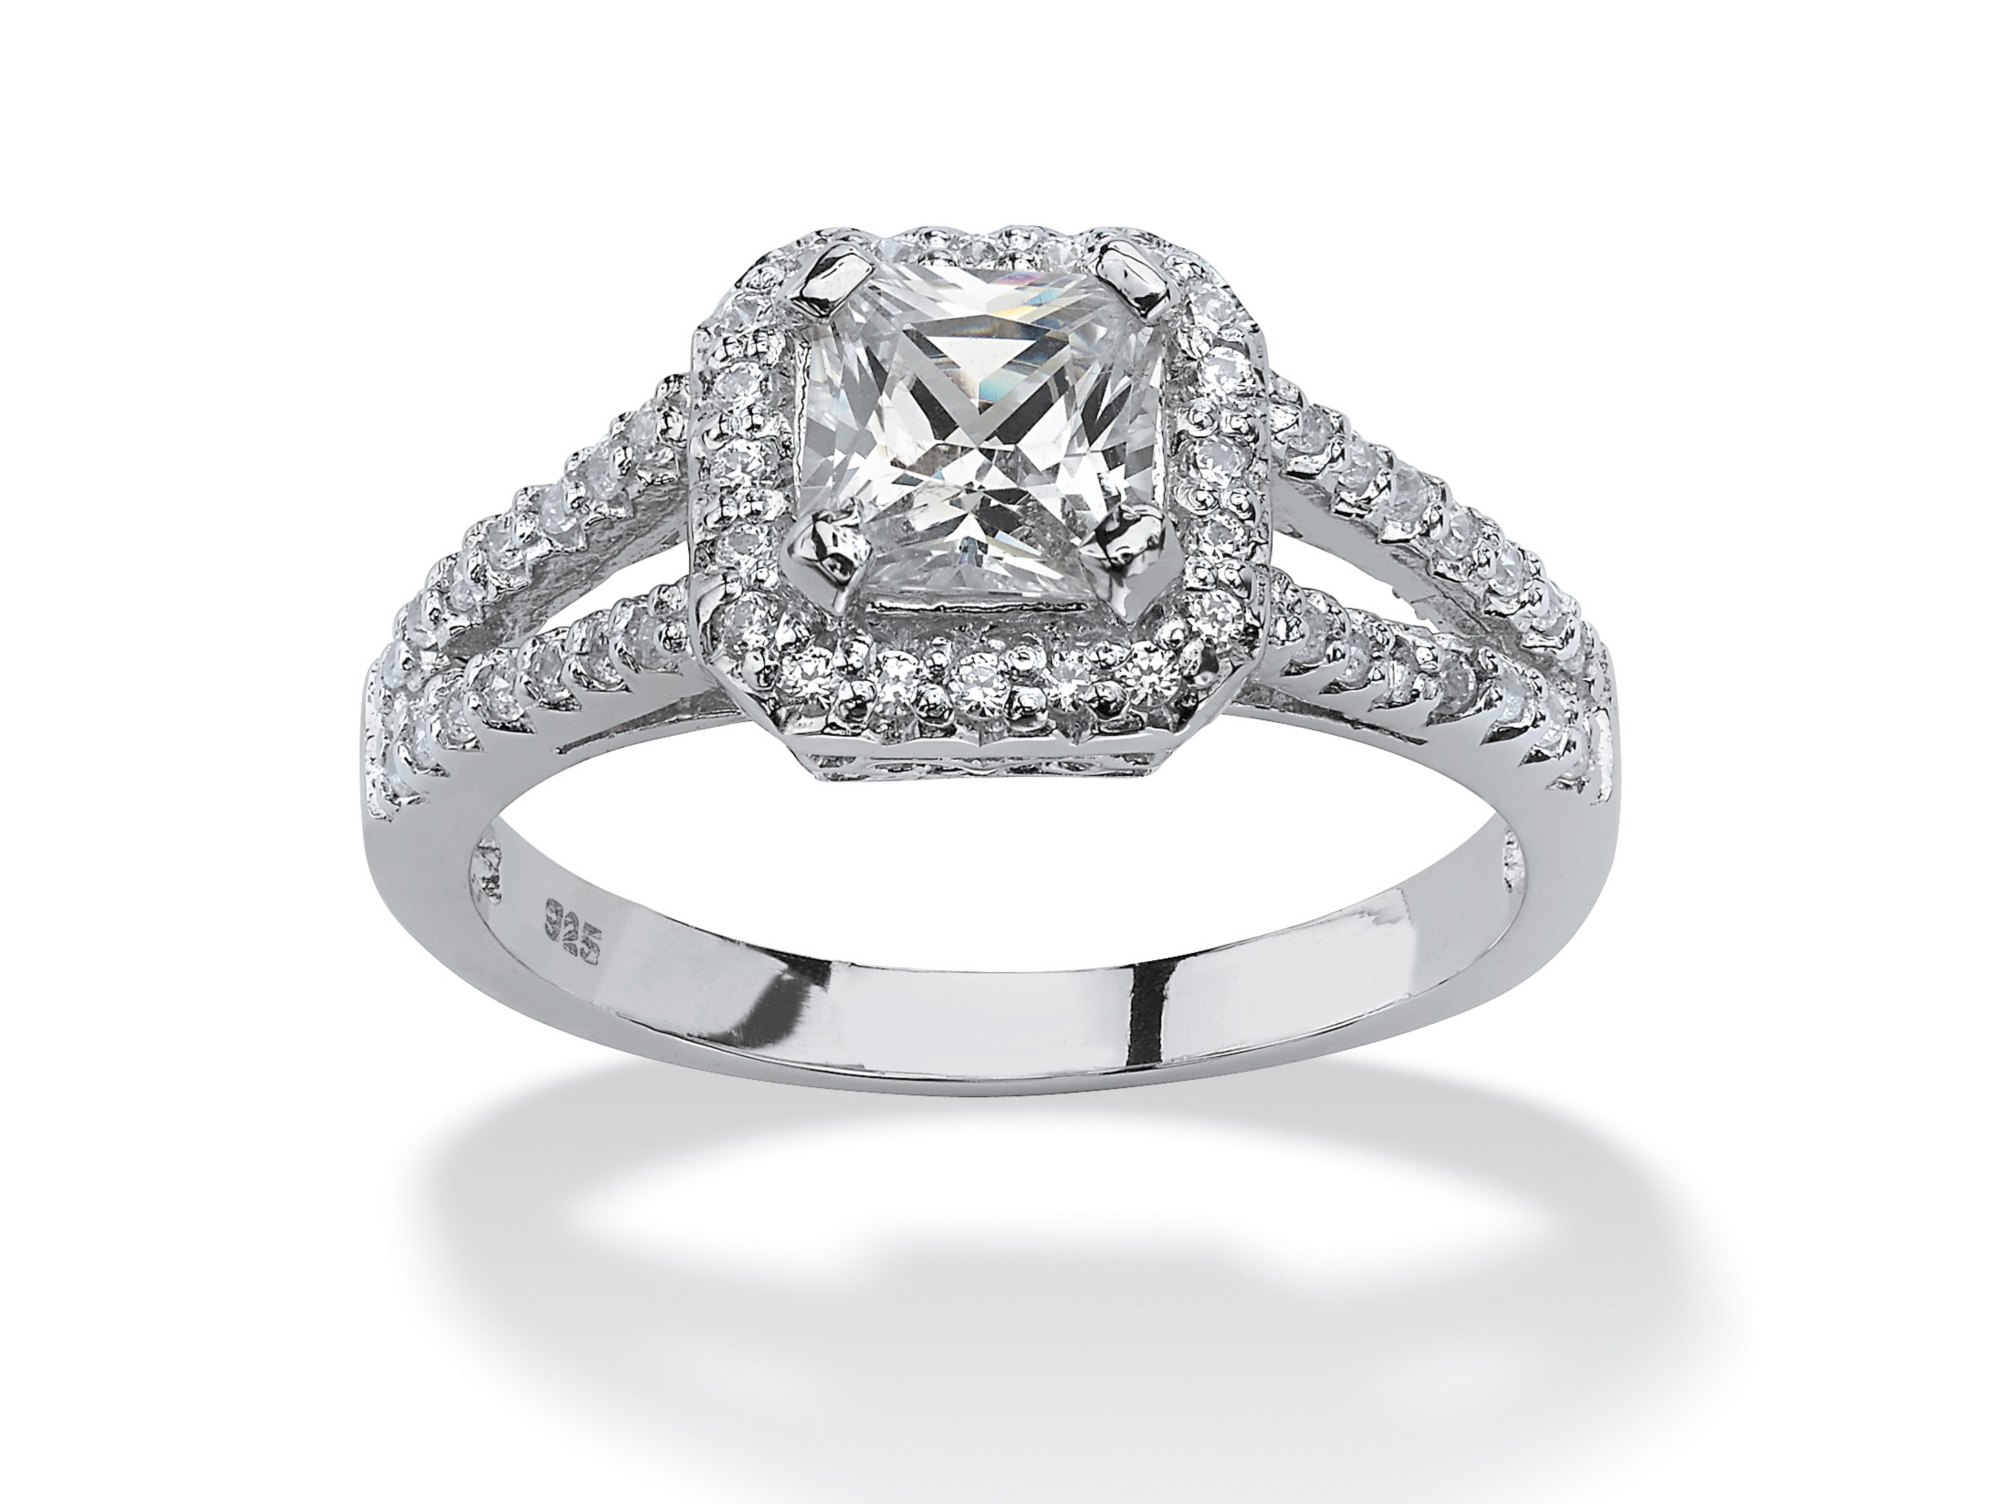 1.63 TCW Princess-Cut Cubic Zirconia Engagement Ring in Platinum over Sterling Silver by PalmBeach Jewelry